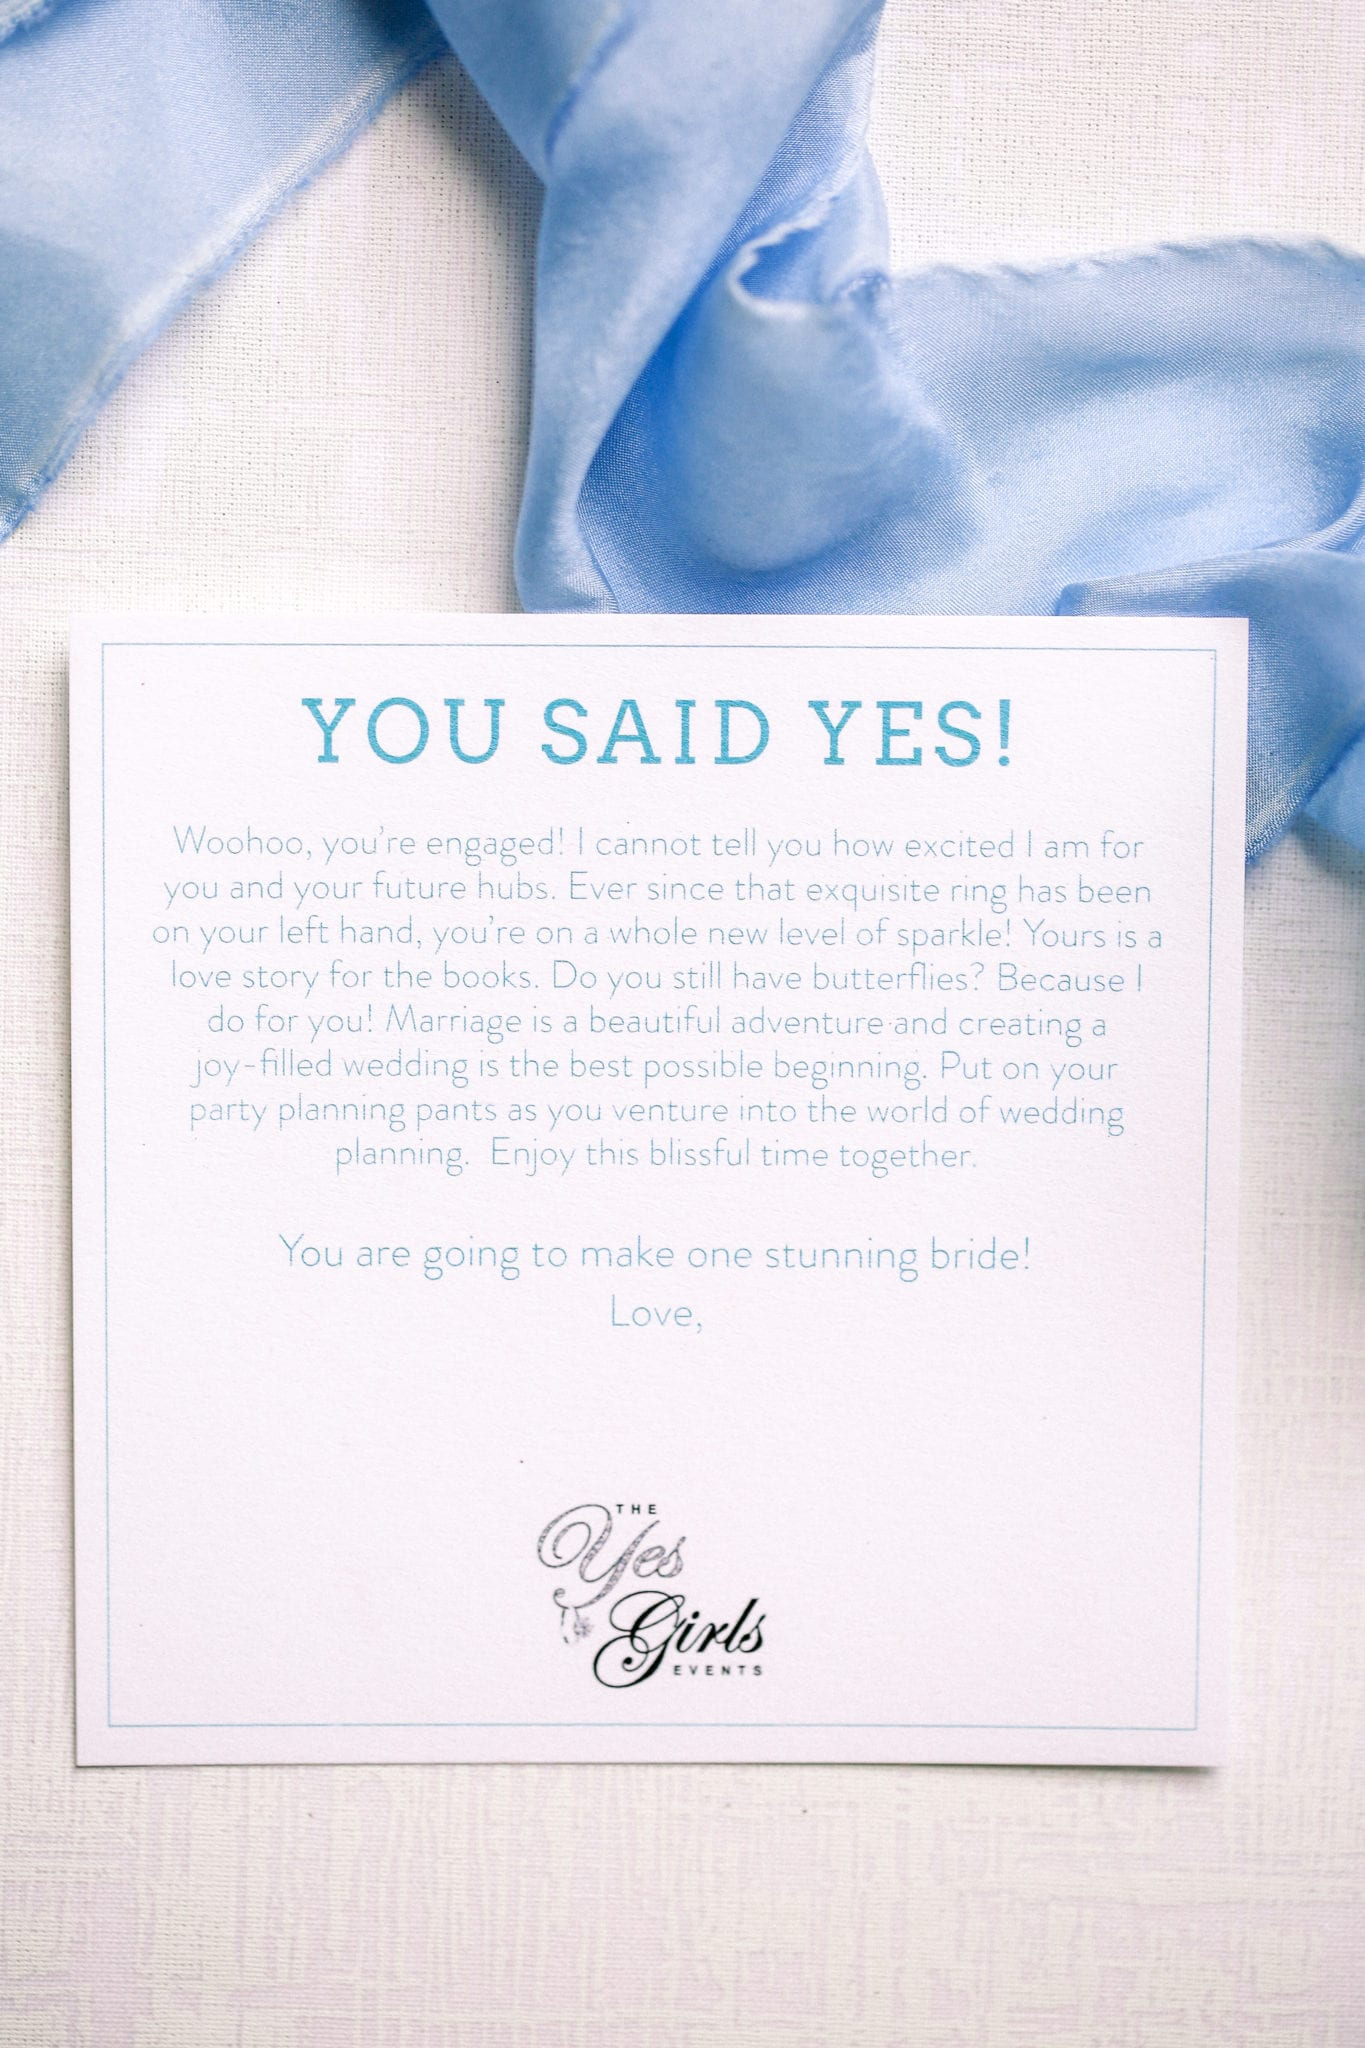 You Said Yes Card The Yes Girls Just Engaged Box